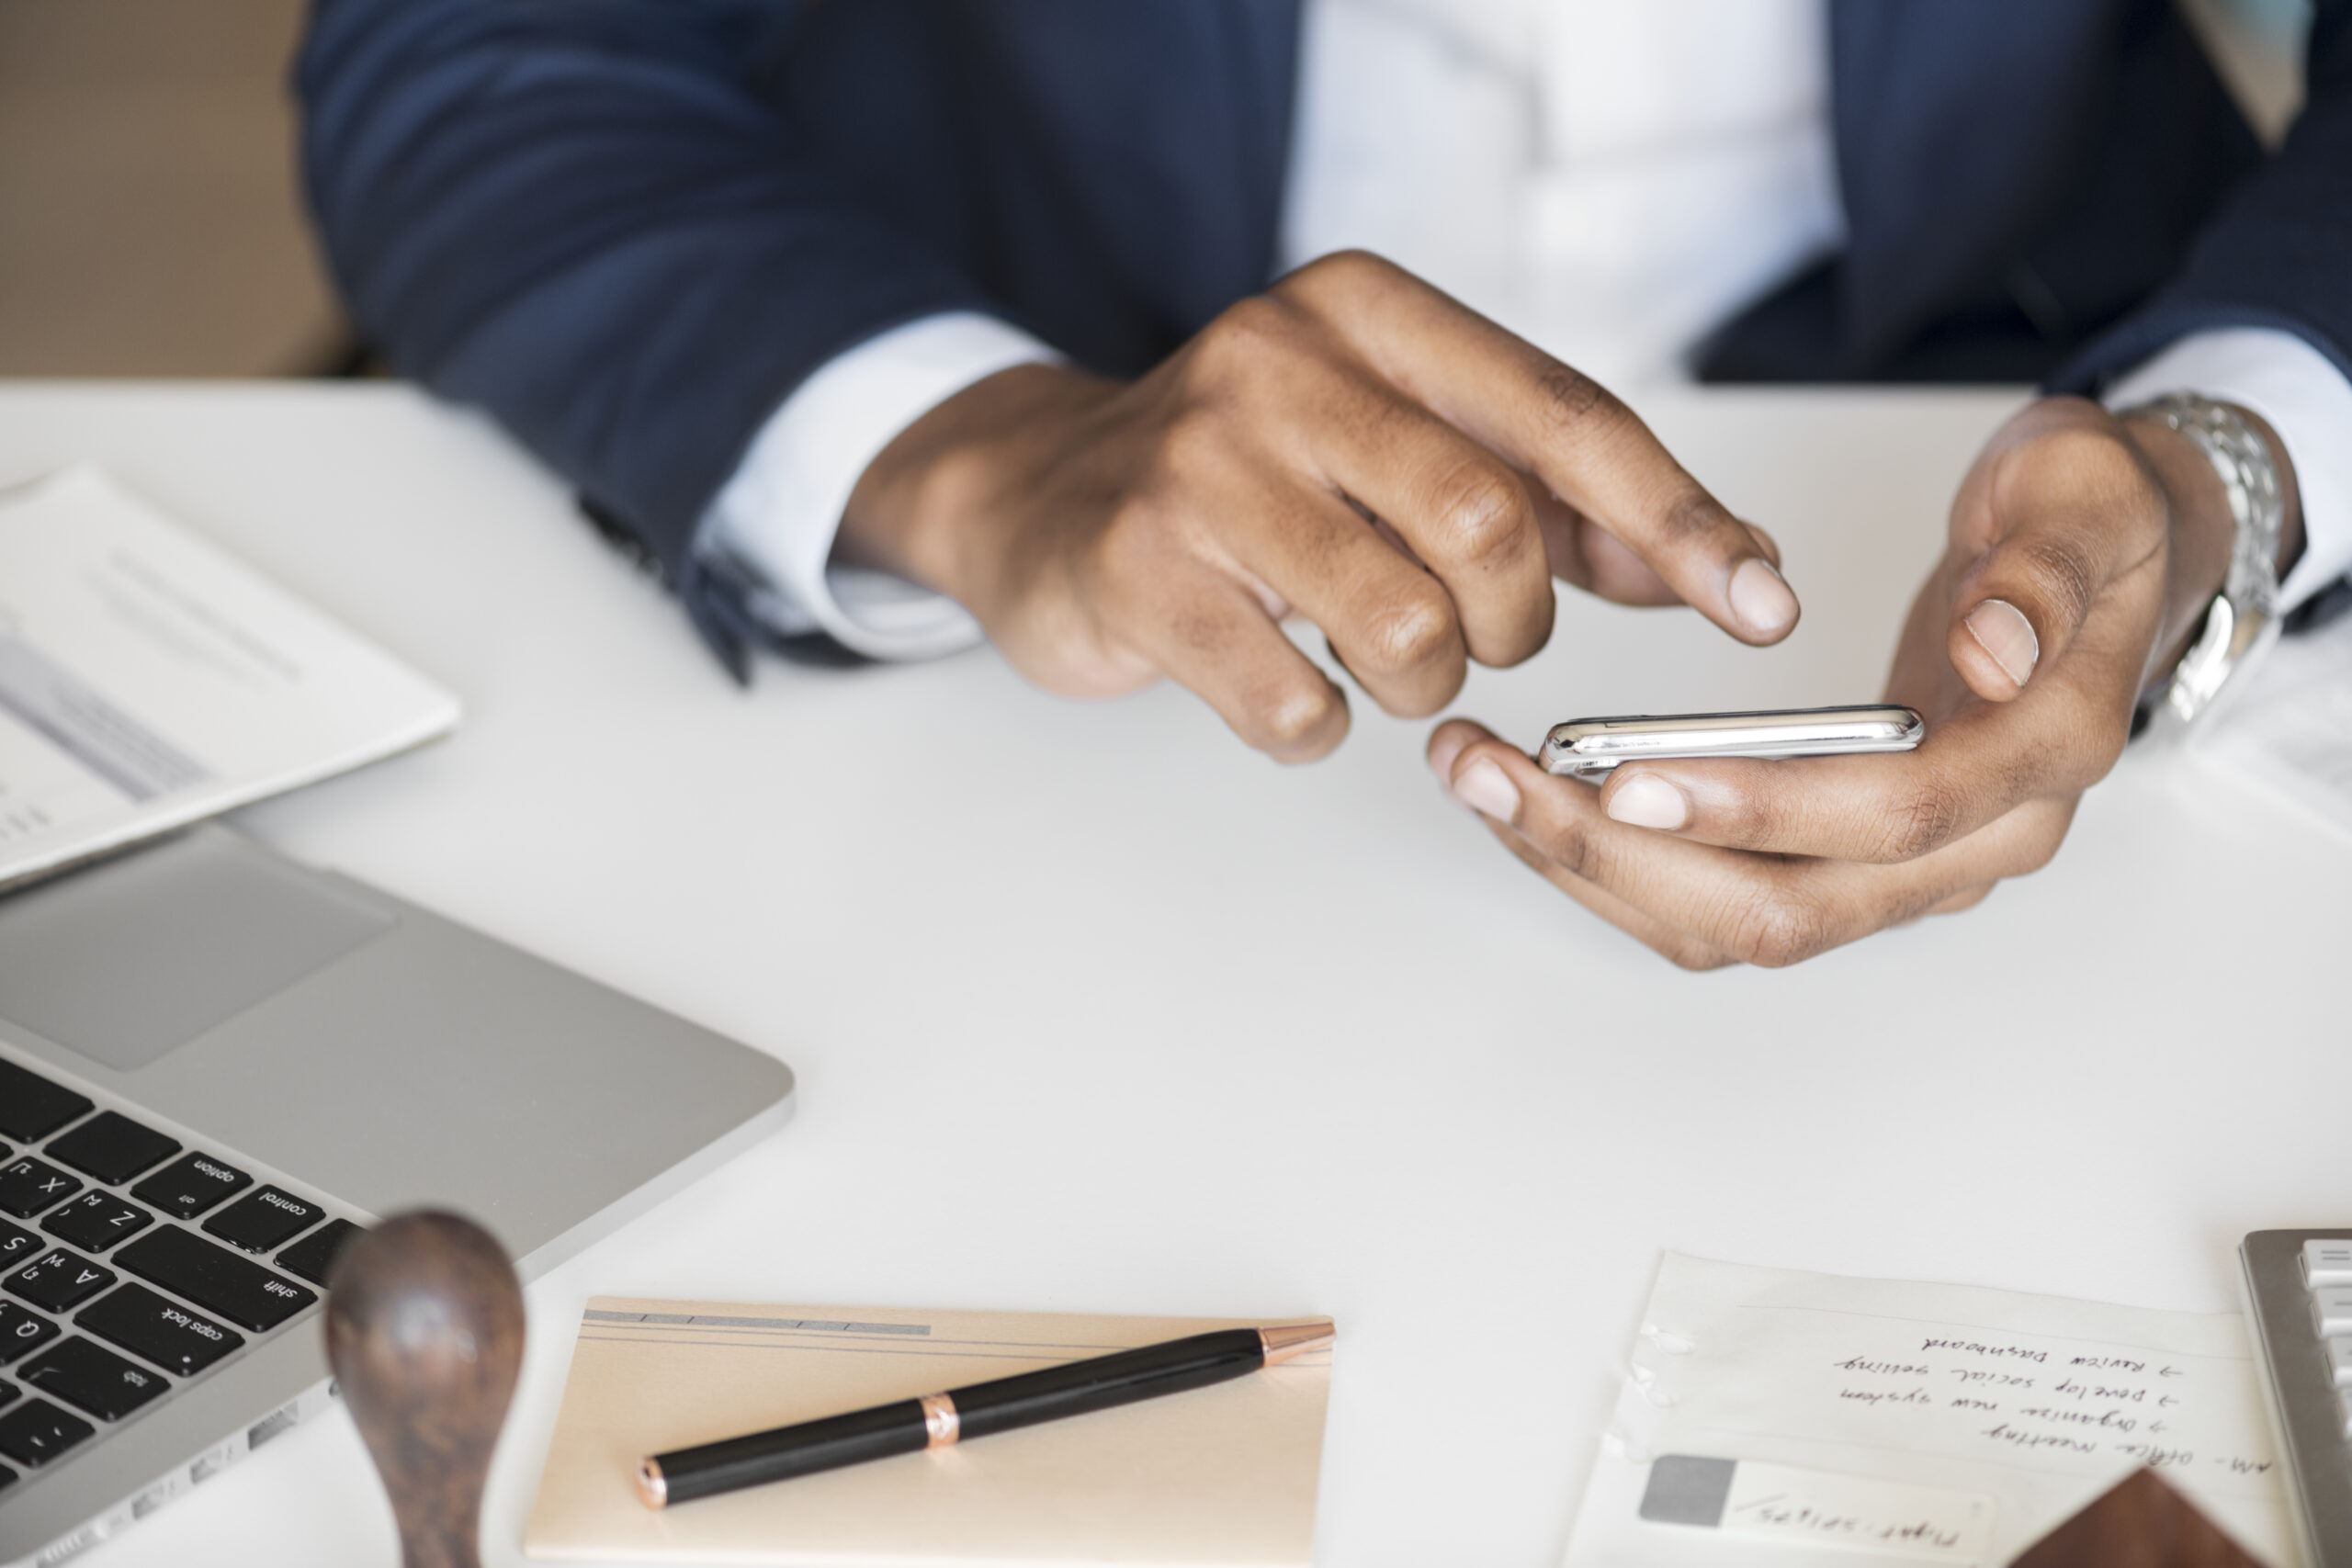 Man in suit at desk on phone